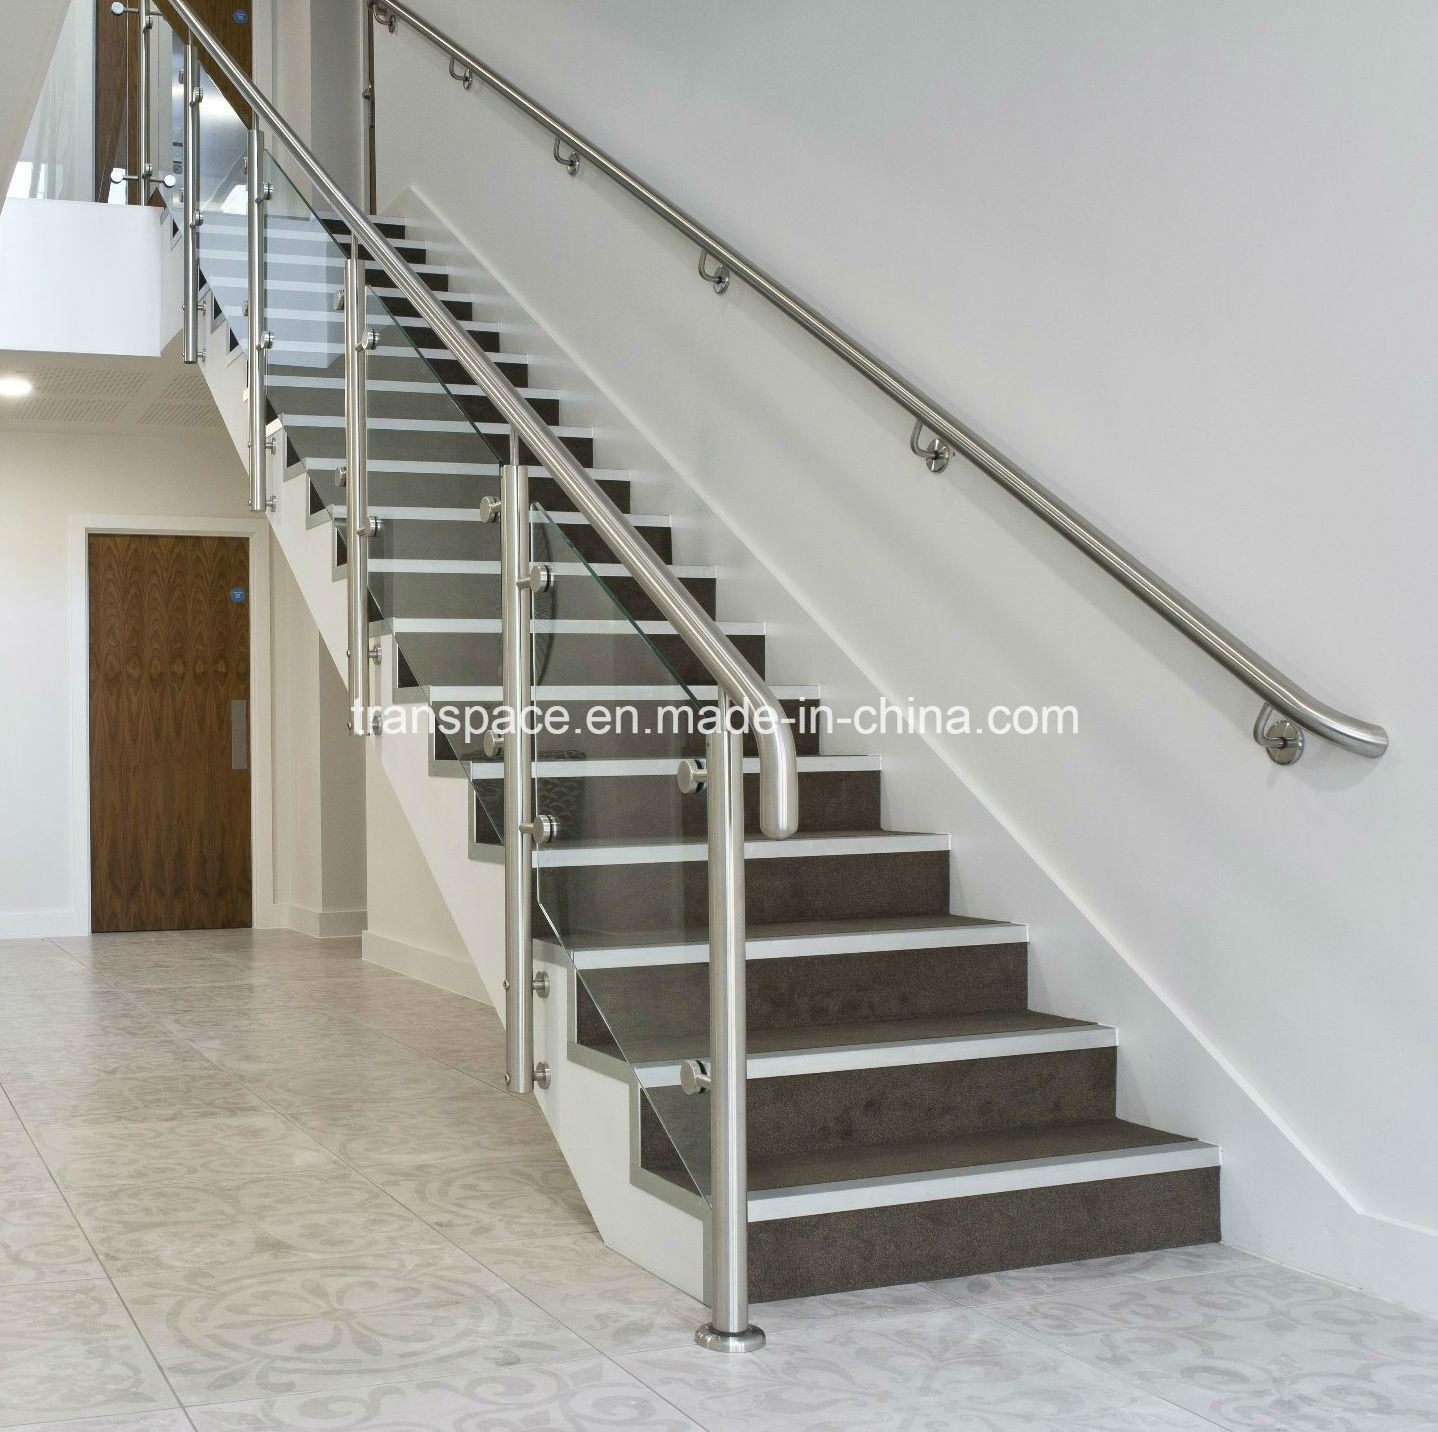 China Indoor Stainless Steel Glass Stair Balustrade Stainless | Stainless Steel Glass Staircase | Transparent | Handle | Powder Coated Steel | Open Tread | Black Stained